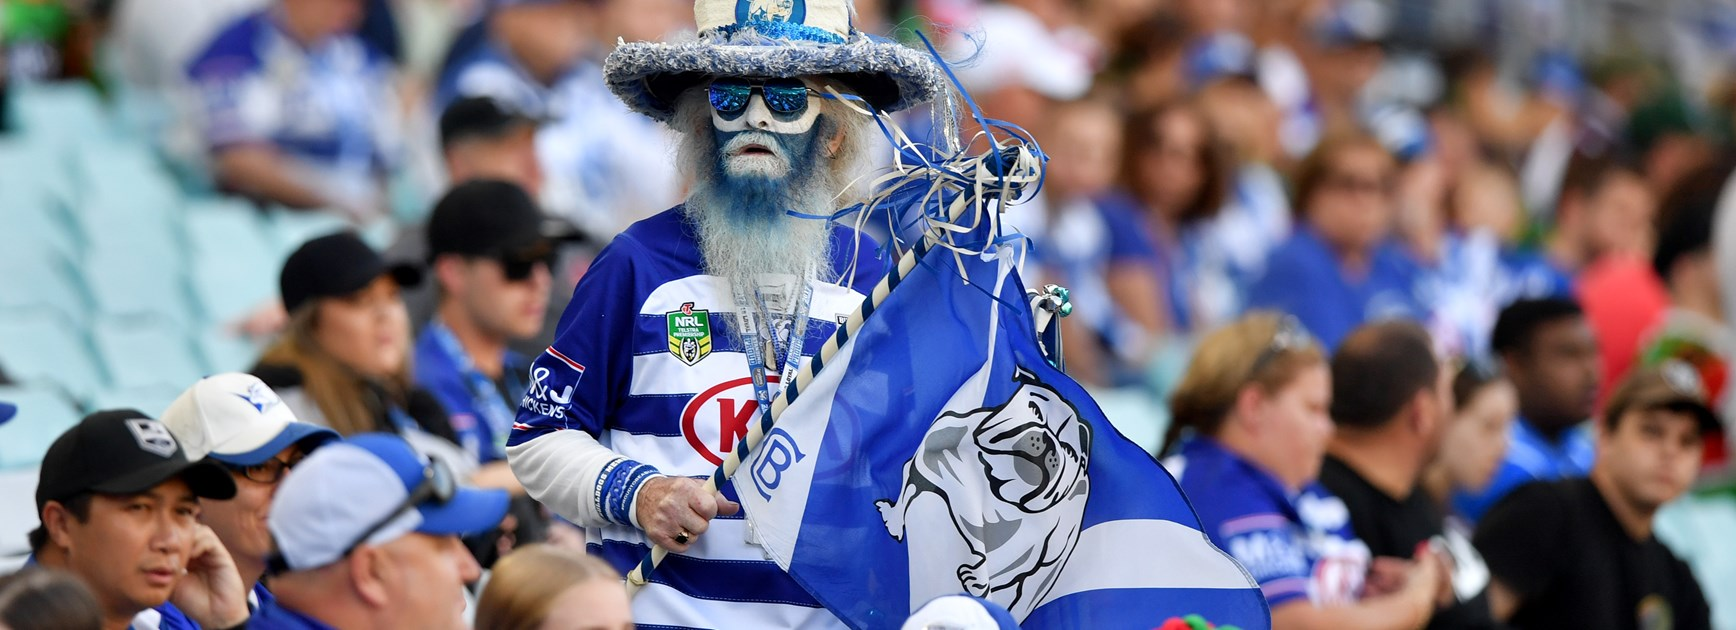 Reciprocal entry rights in play for Bulldogs Members